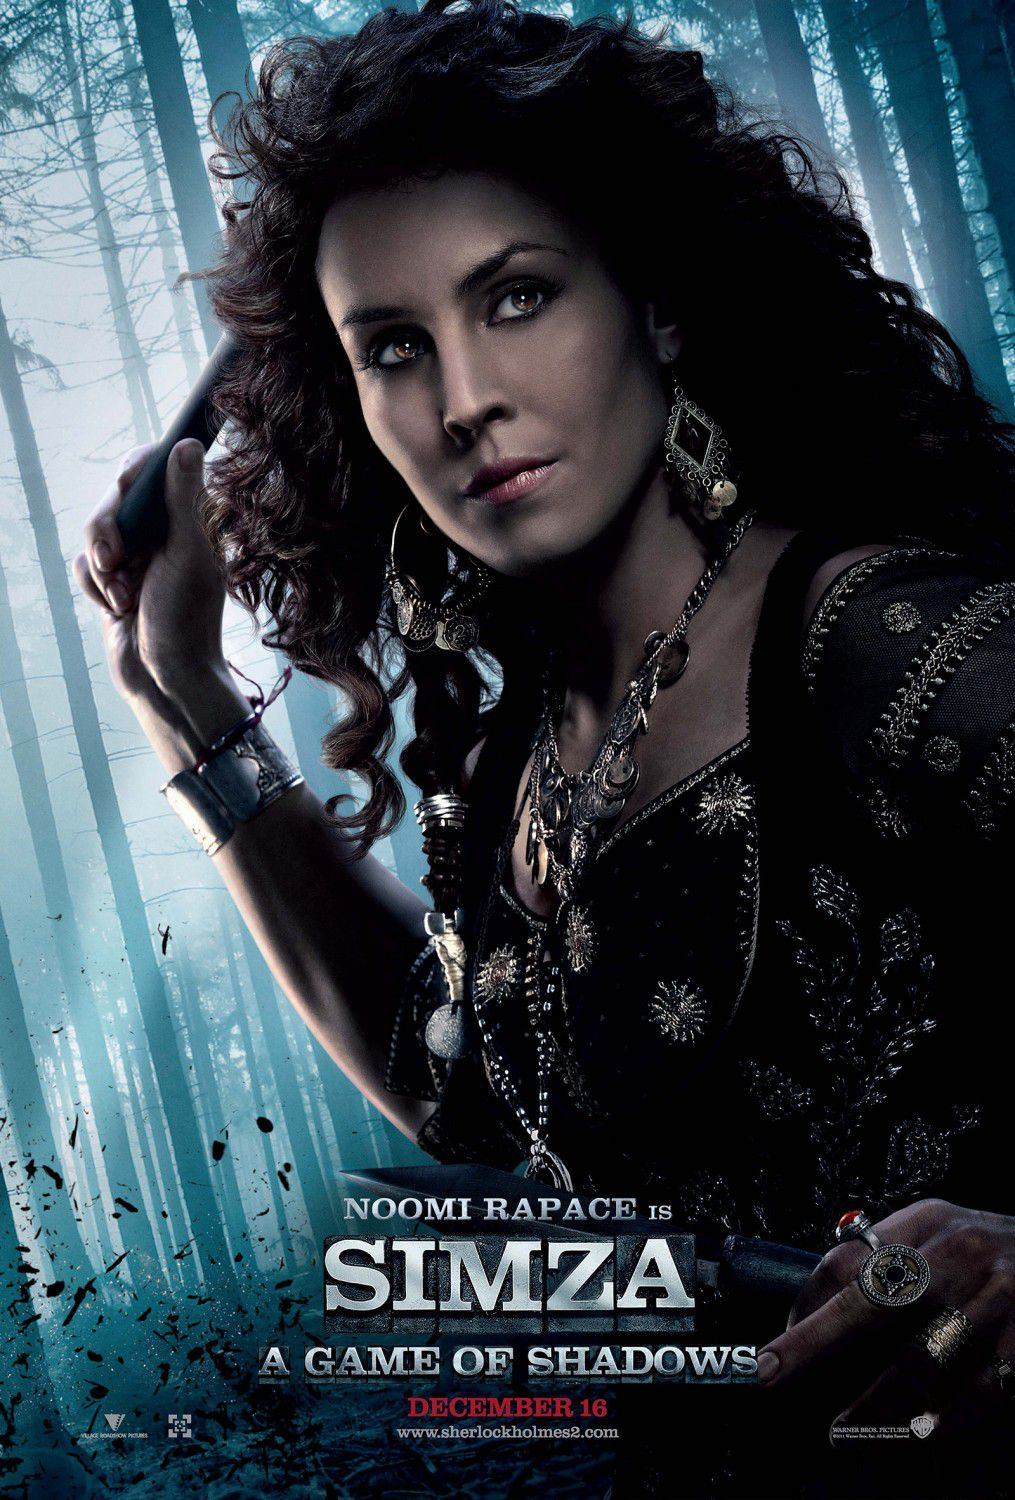 Sherlock Holmes a Game of Shadows - Gioco di Ombre (2011) - Noomi Rapace